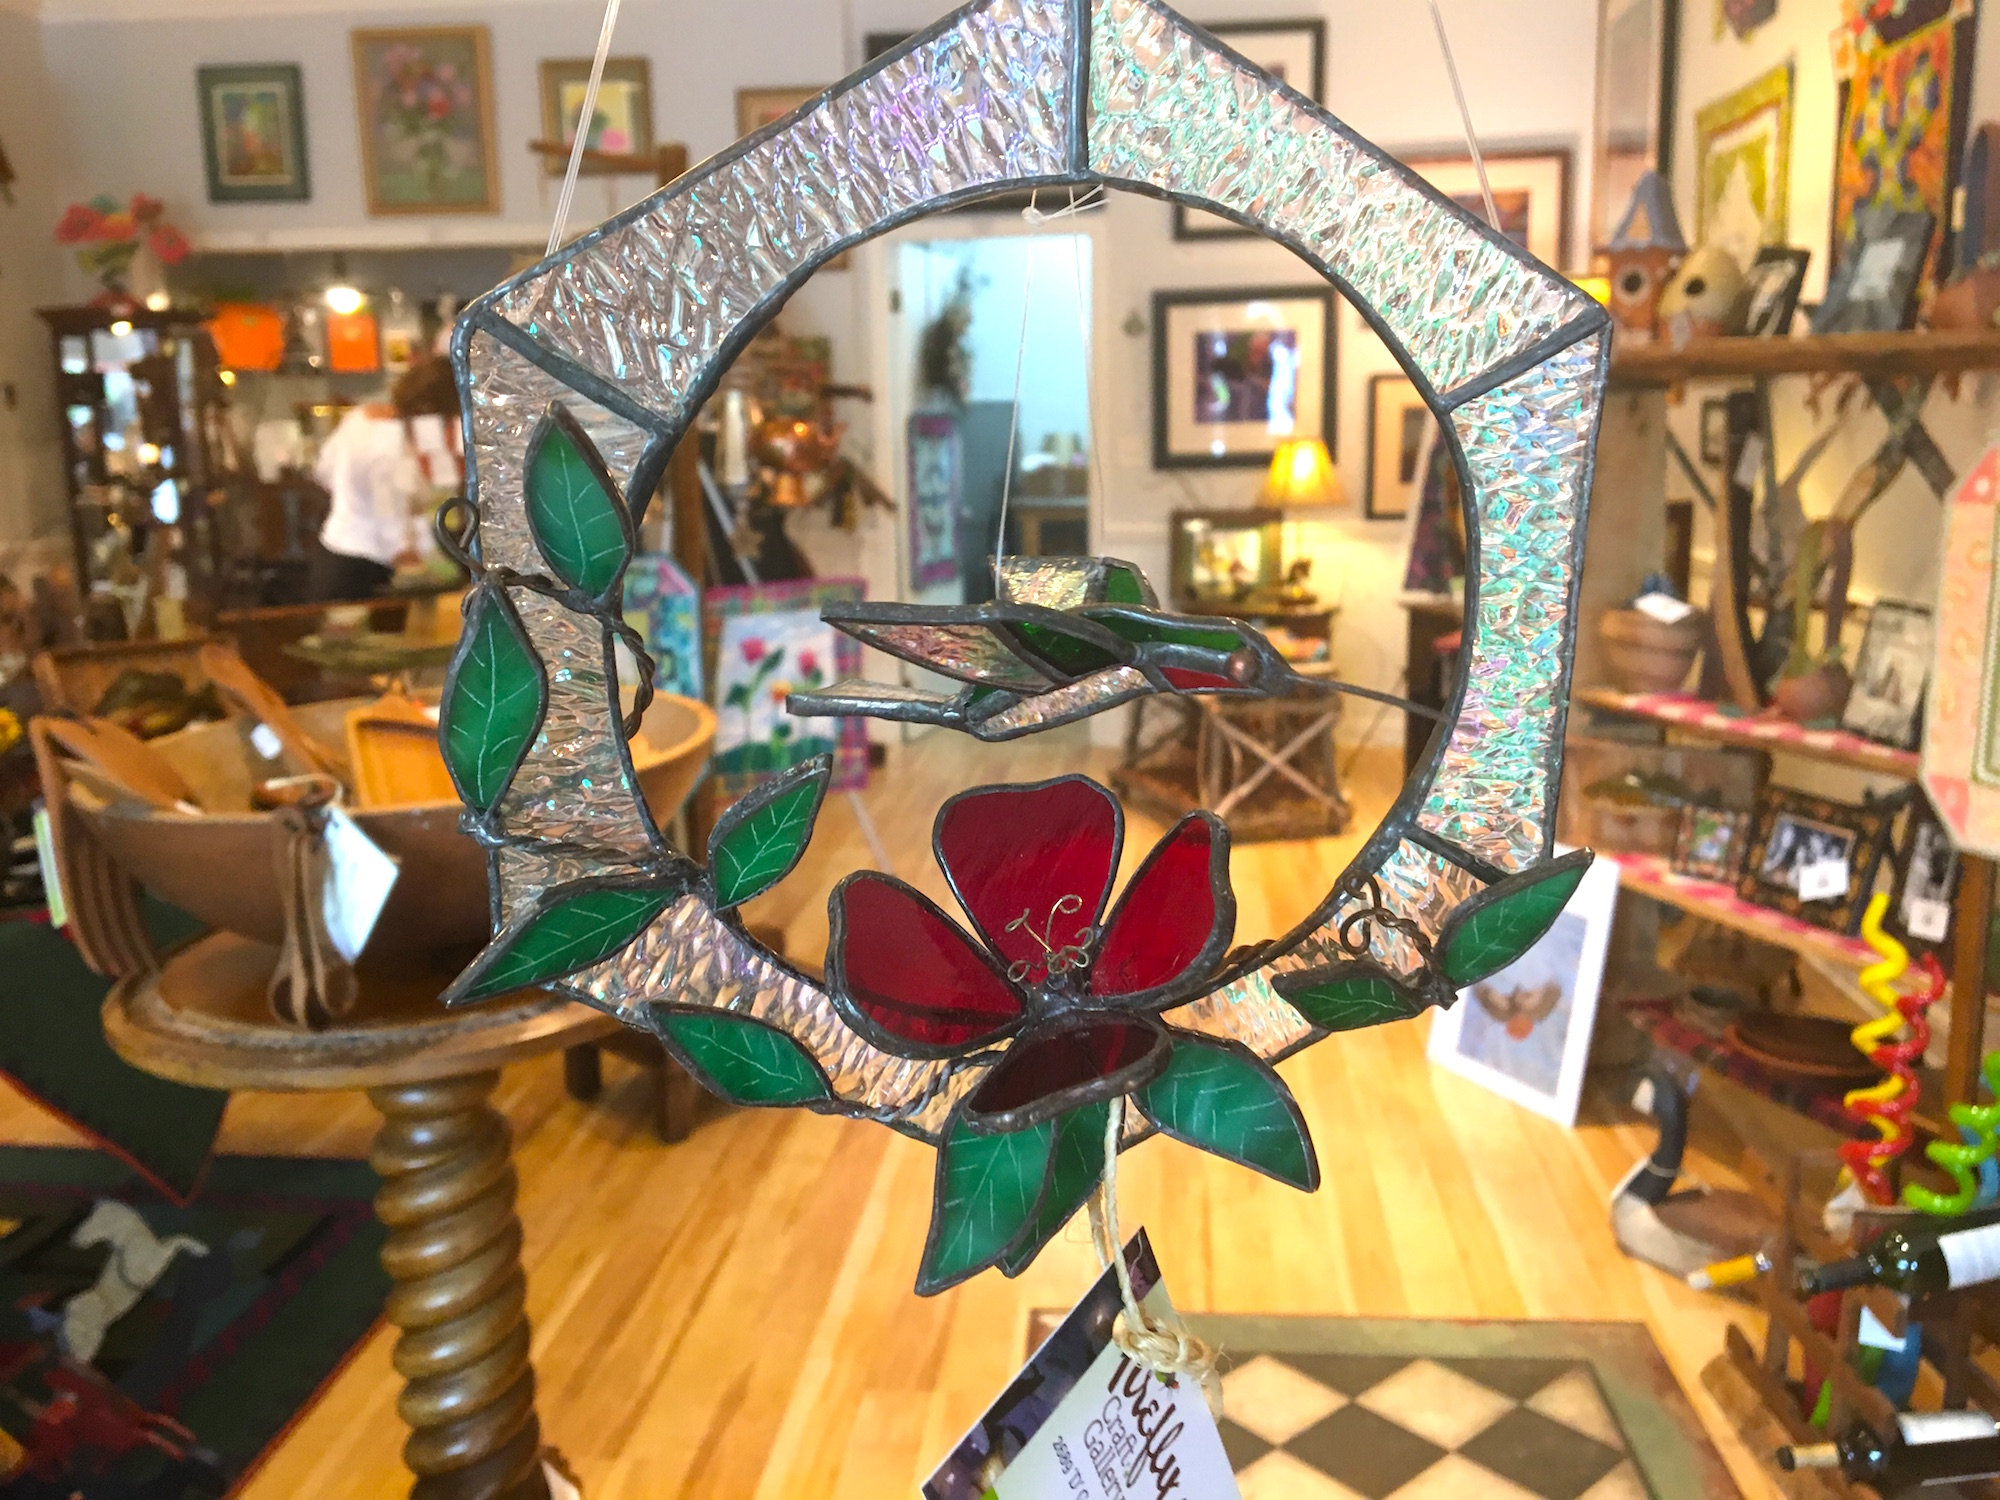 3-D Hummingbird in stained glass by Kathy Goldstein